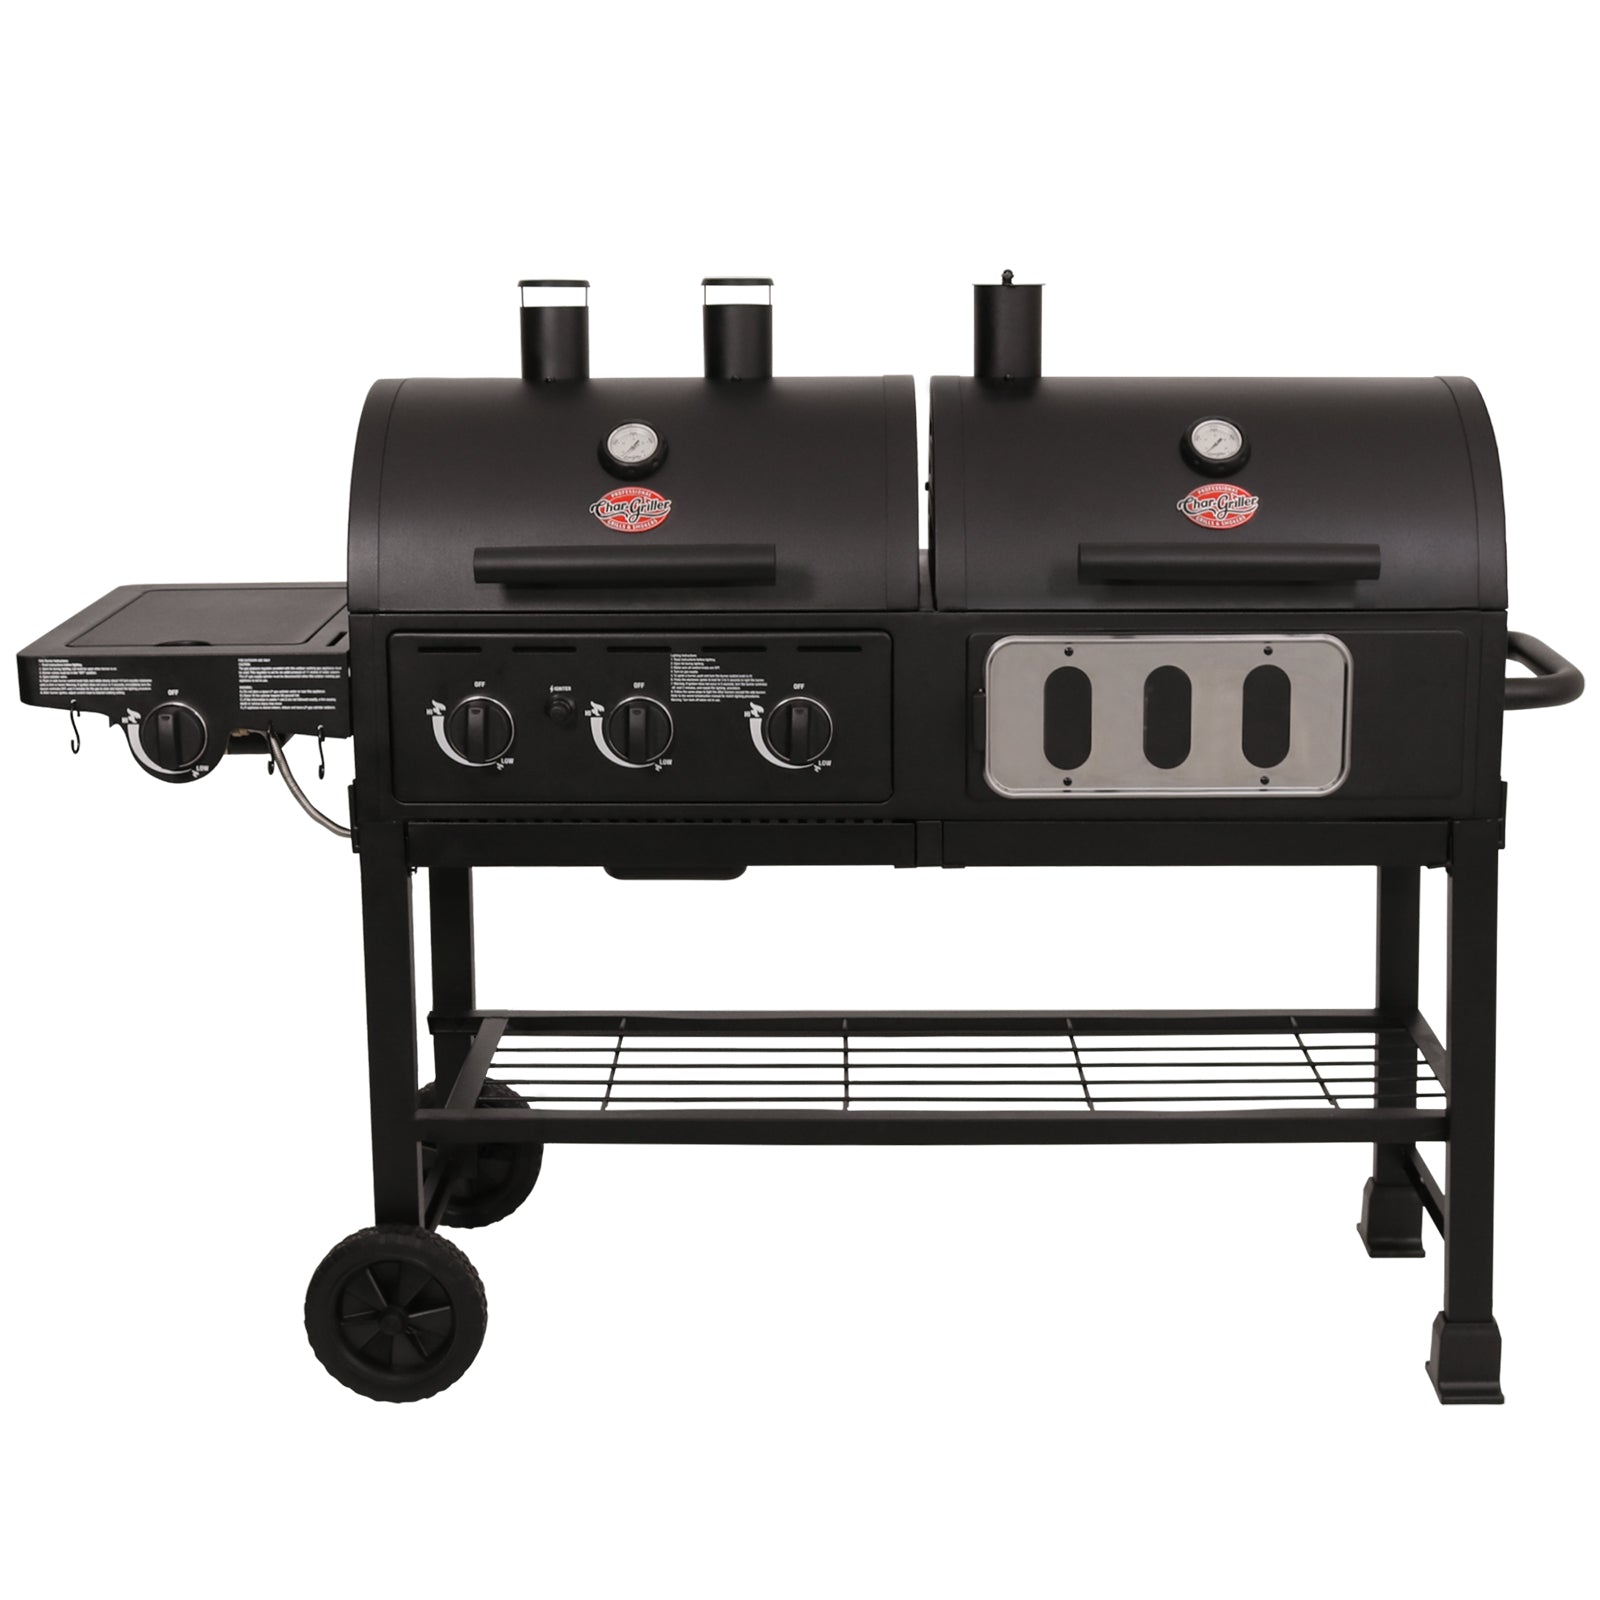 Barbecue Grill Gas And Charcoal - Camping BBQ Grills